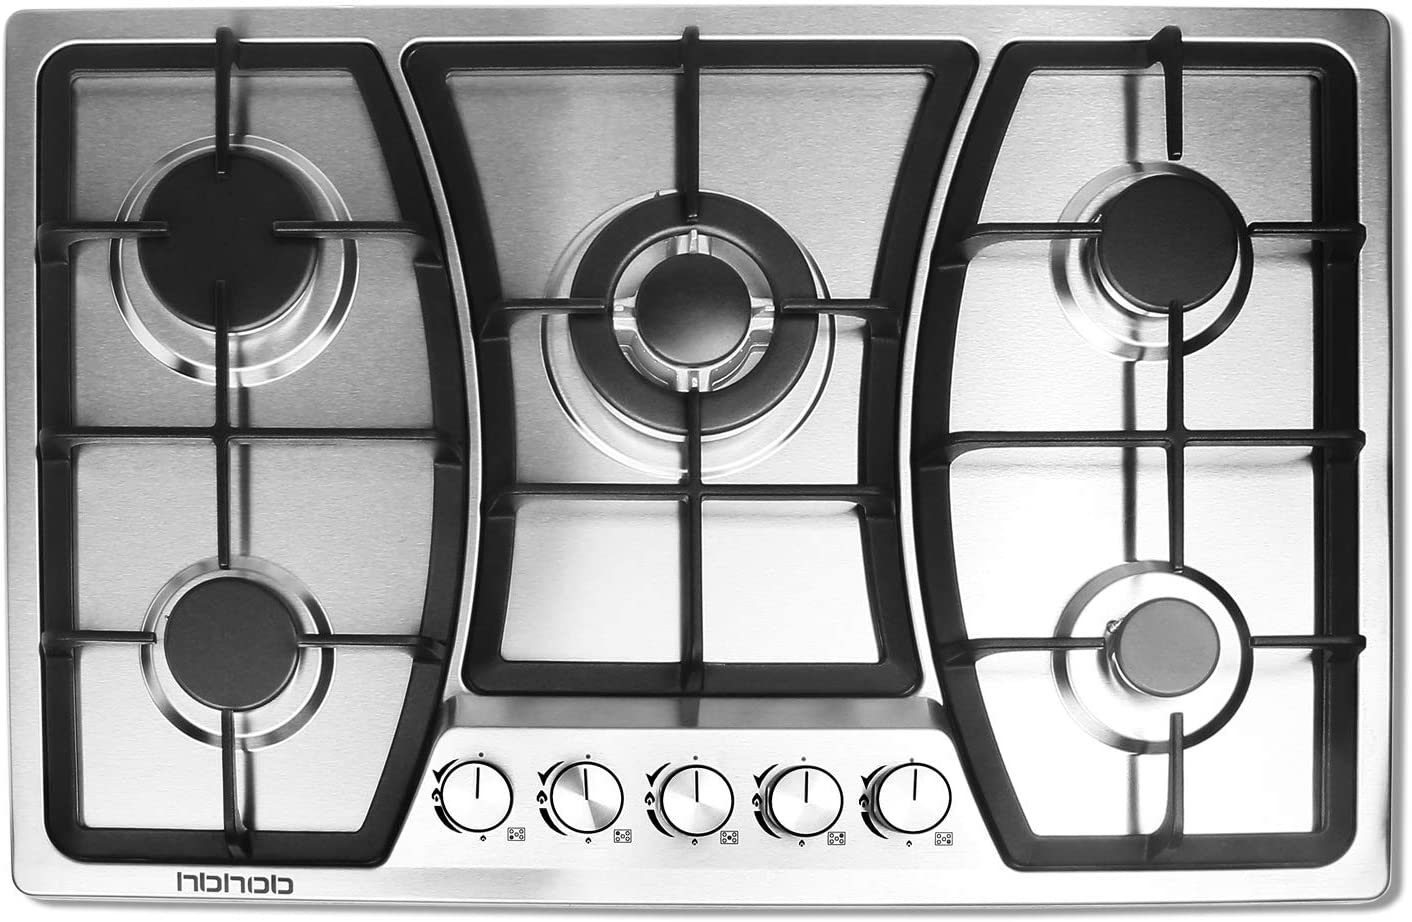 HBHOB 30 inches Gas 5 Burners Gas Stove